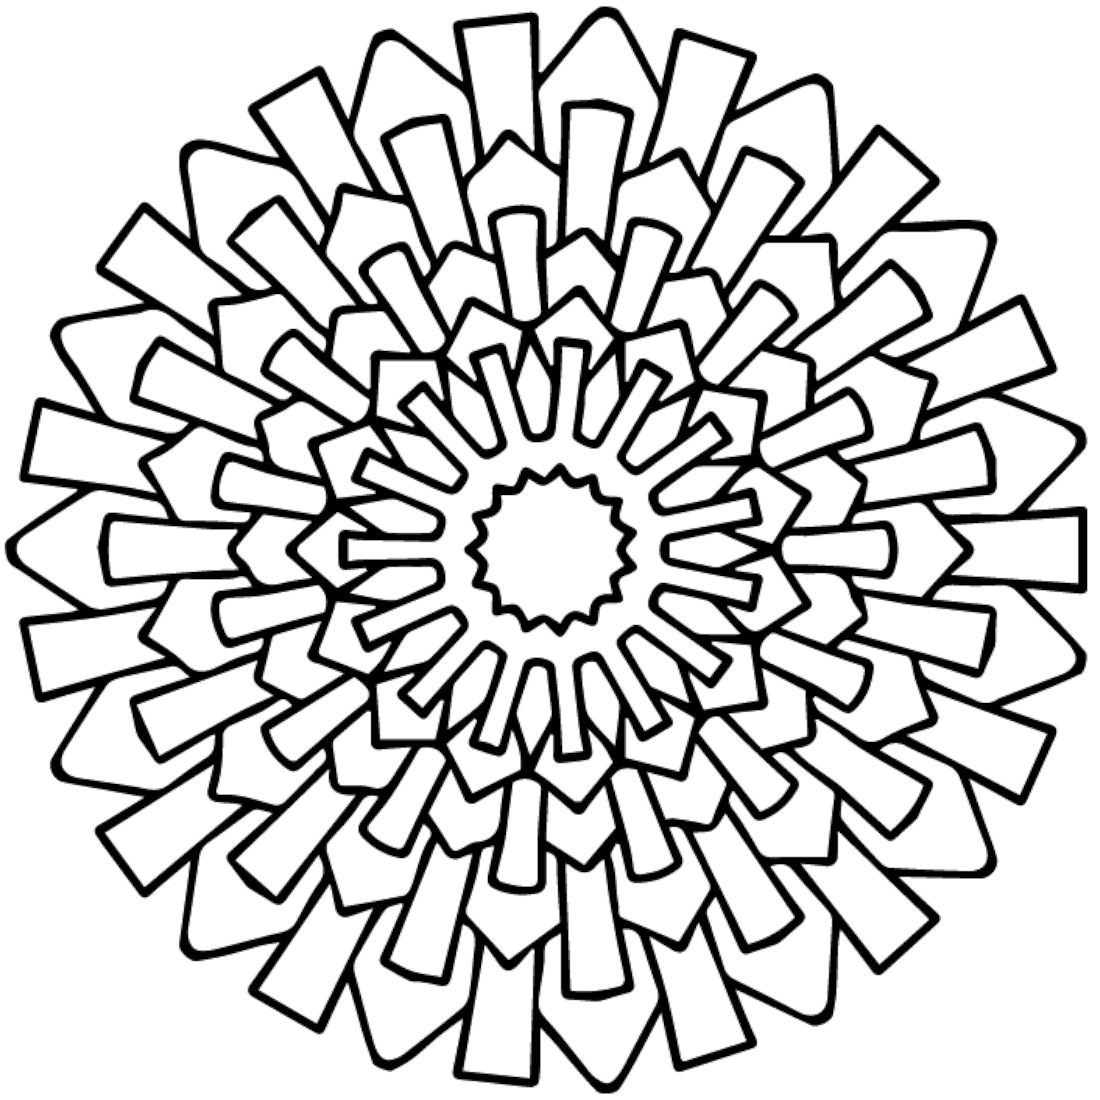 coloring pages stones - photo#46